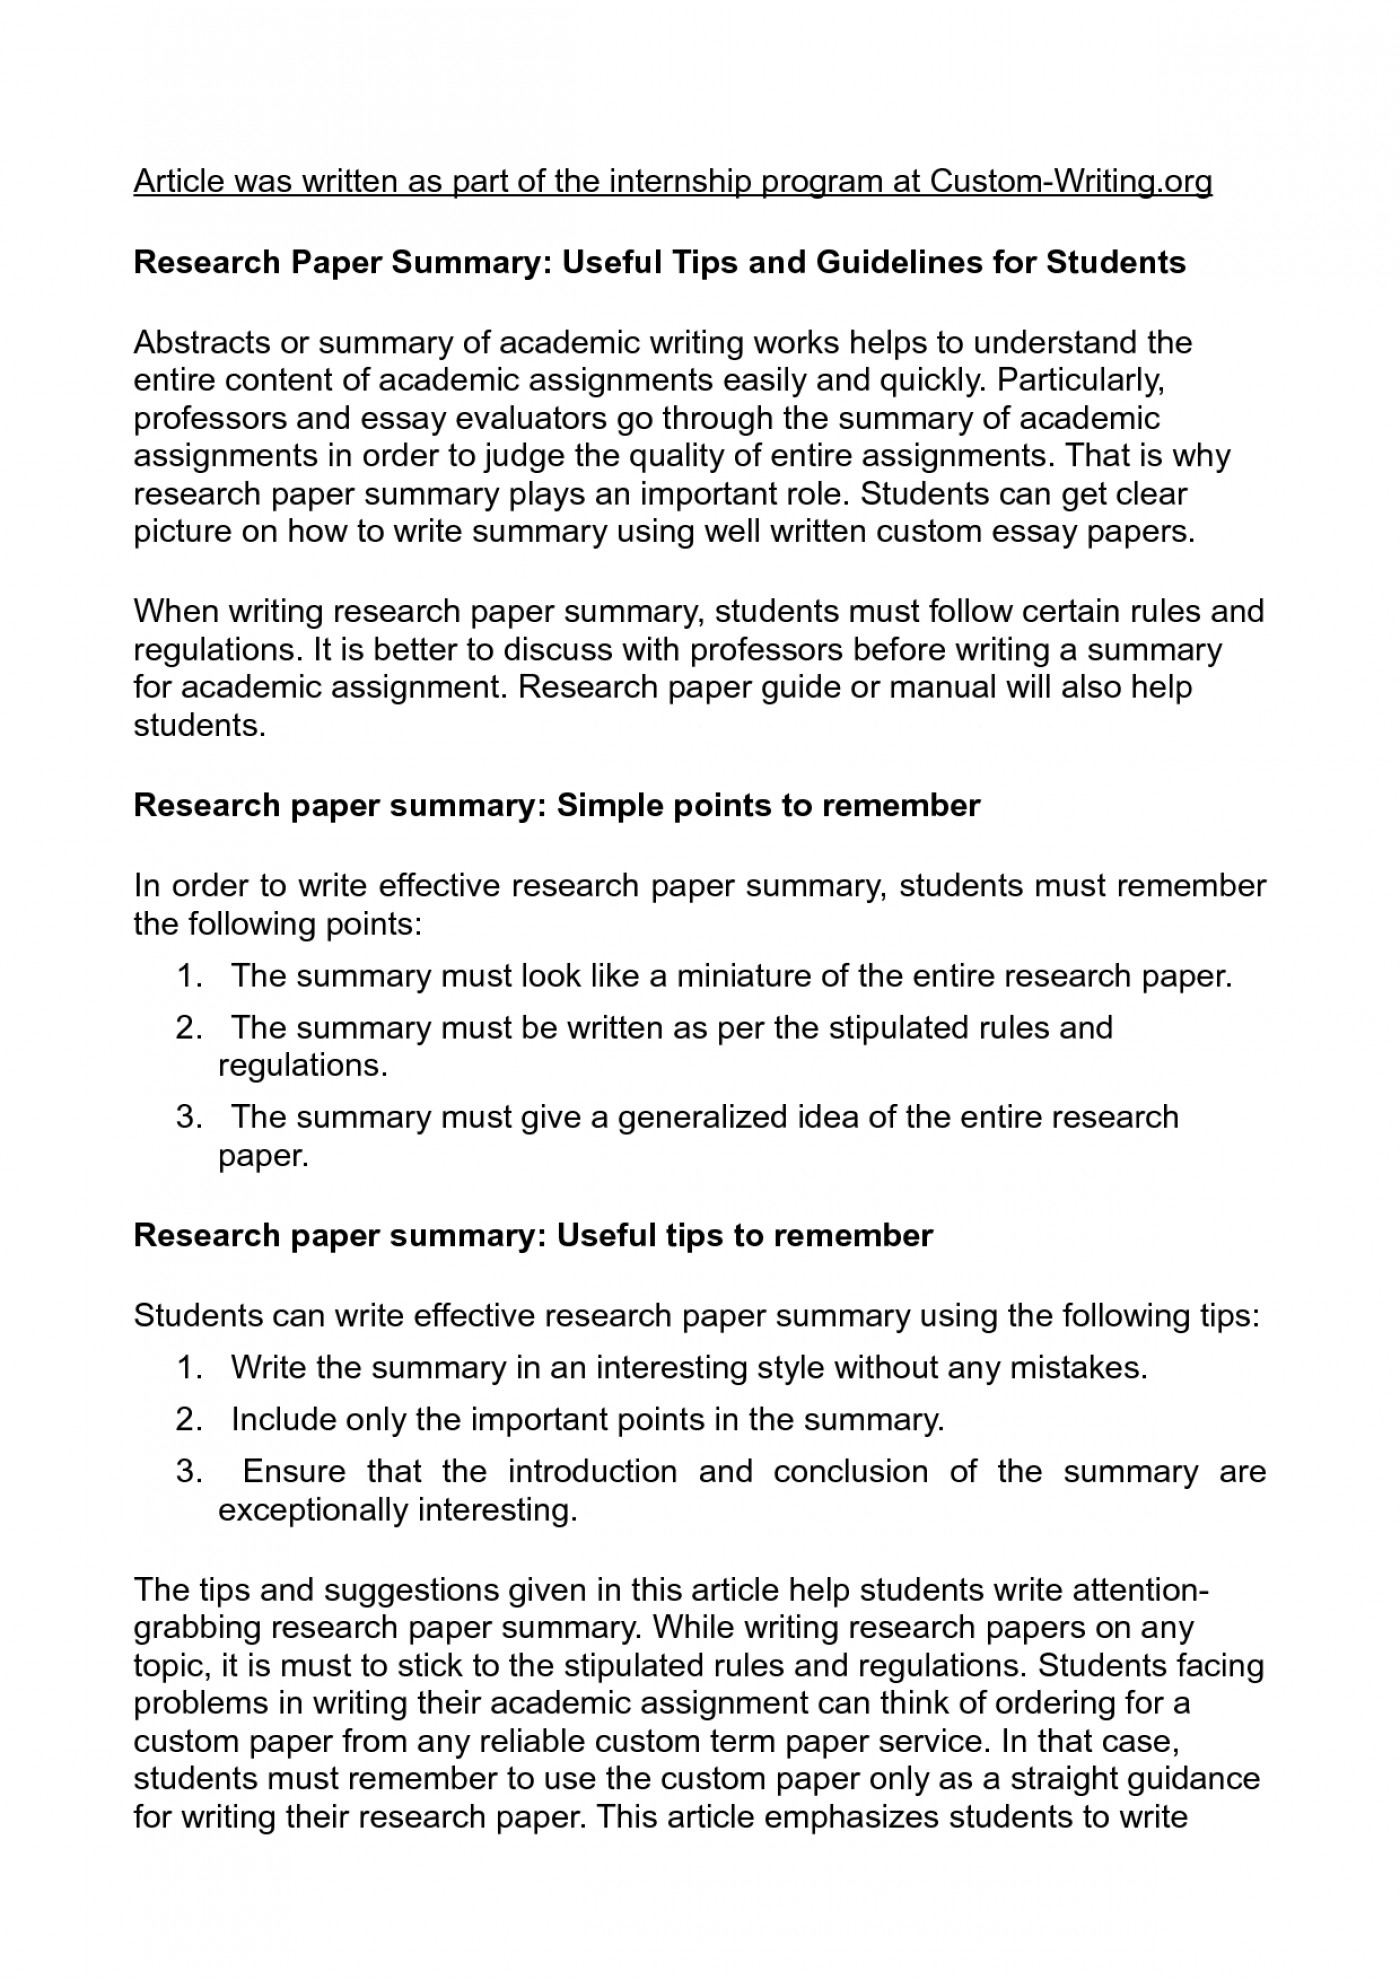 006 Essay Example Adhd Research Papers Brain Scan College About Writing Paper Summary 5 Impressive Argumentative Topics 1400